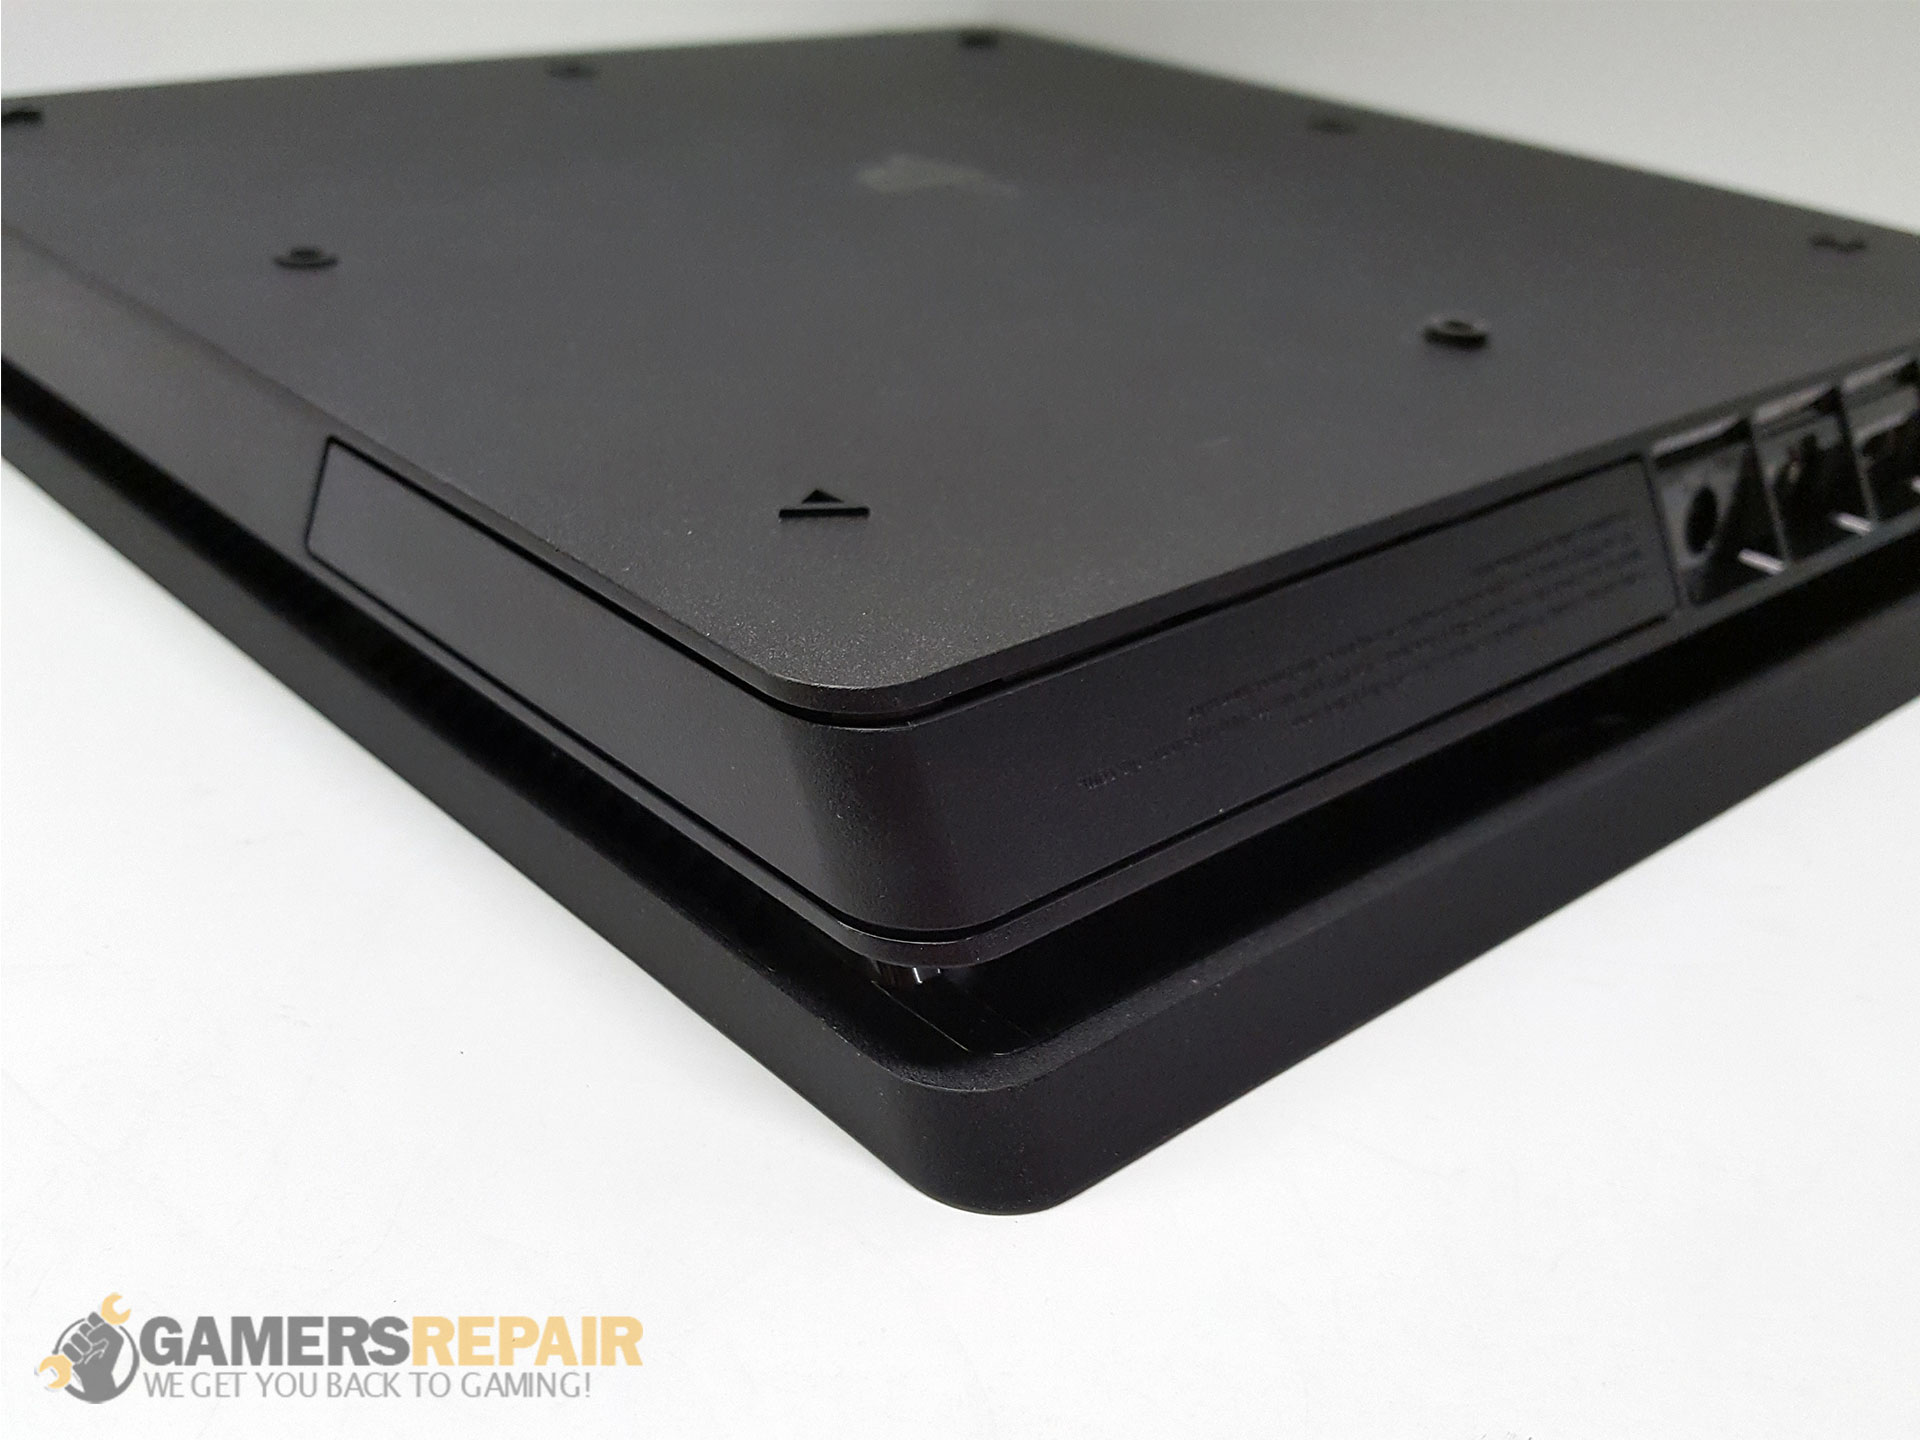 ps4-slim-hard-drive-door-installed-2.jpg